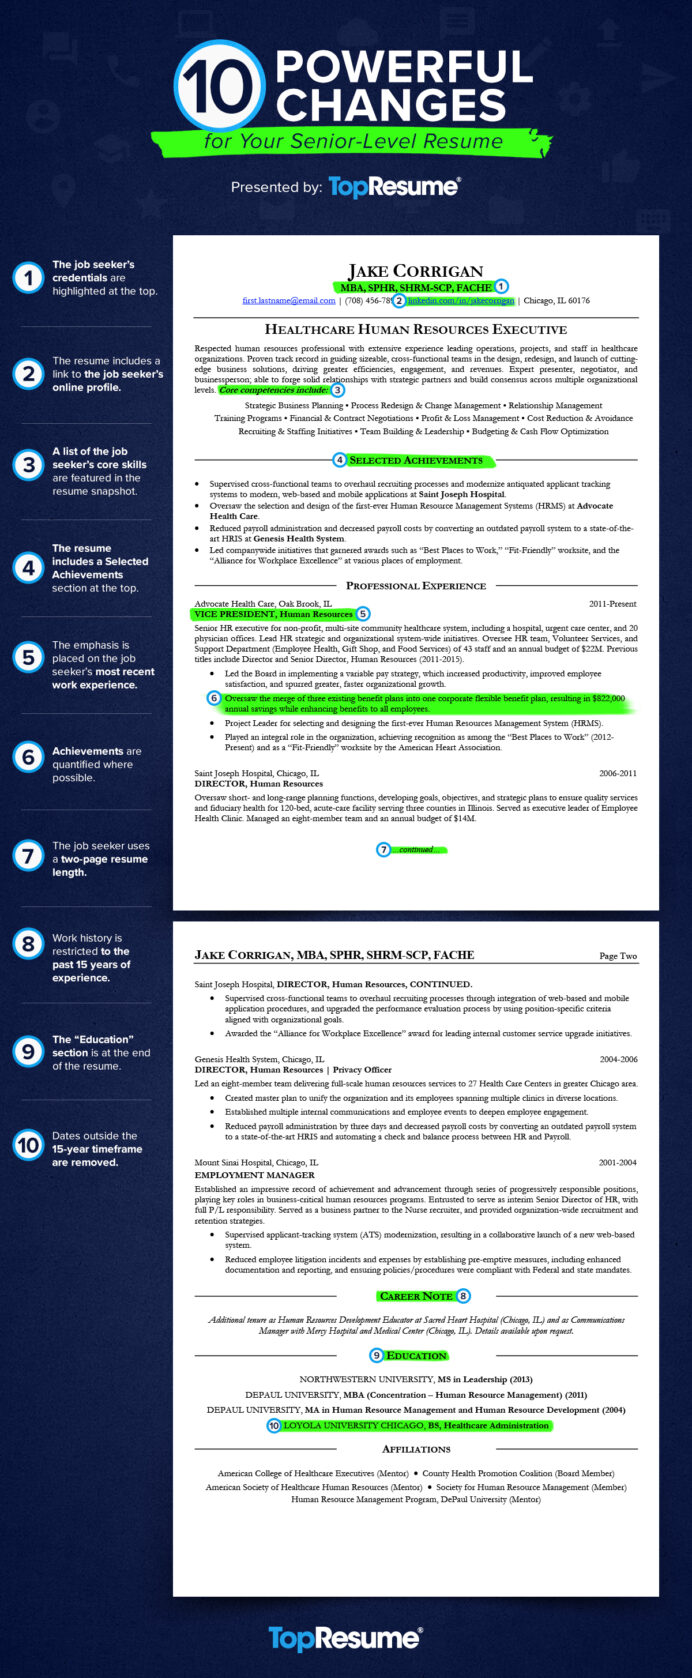 powerful changes for your executive level resume topresume template free ig v1 lpn job Resume Executive Resume Template 2019 Free